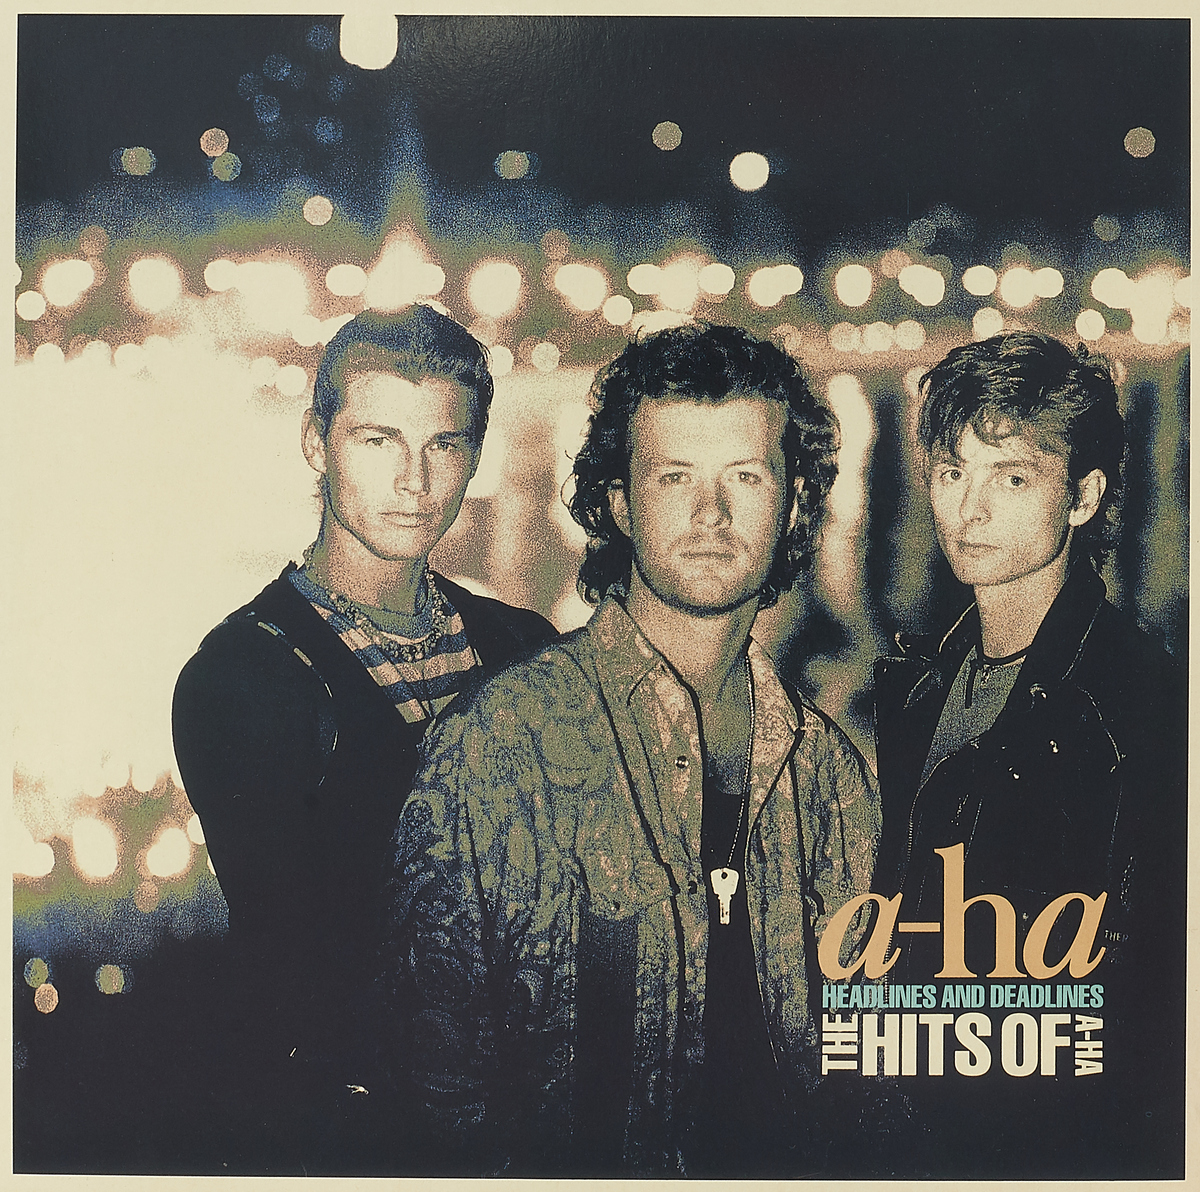 цена на A-Ha A-Ha. Headlines And Deadlines - The Hits Of A-Ha (LP)